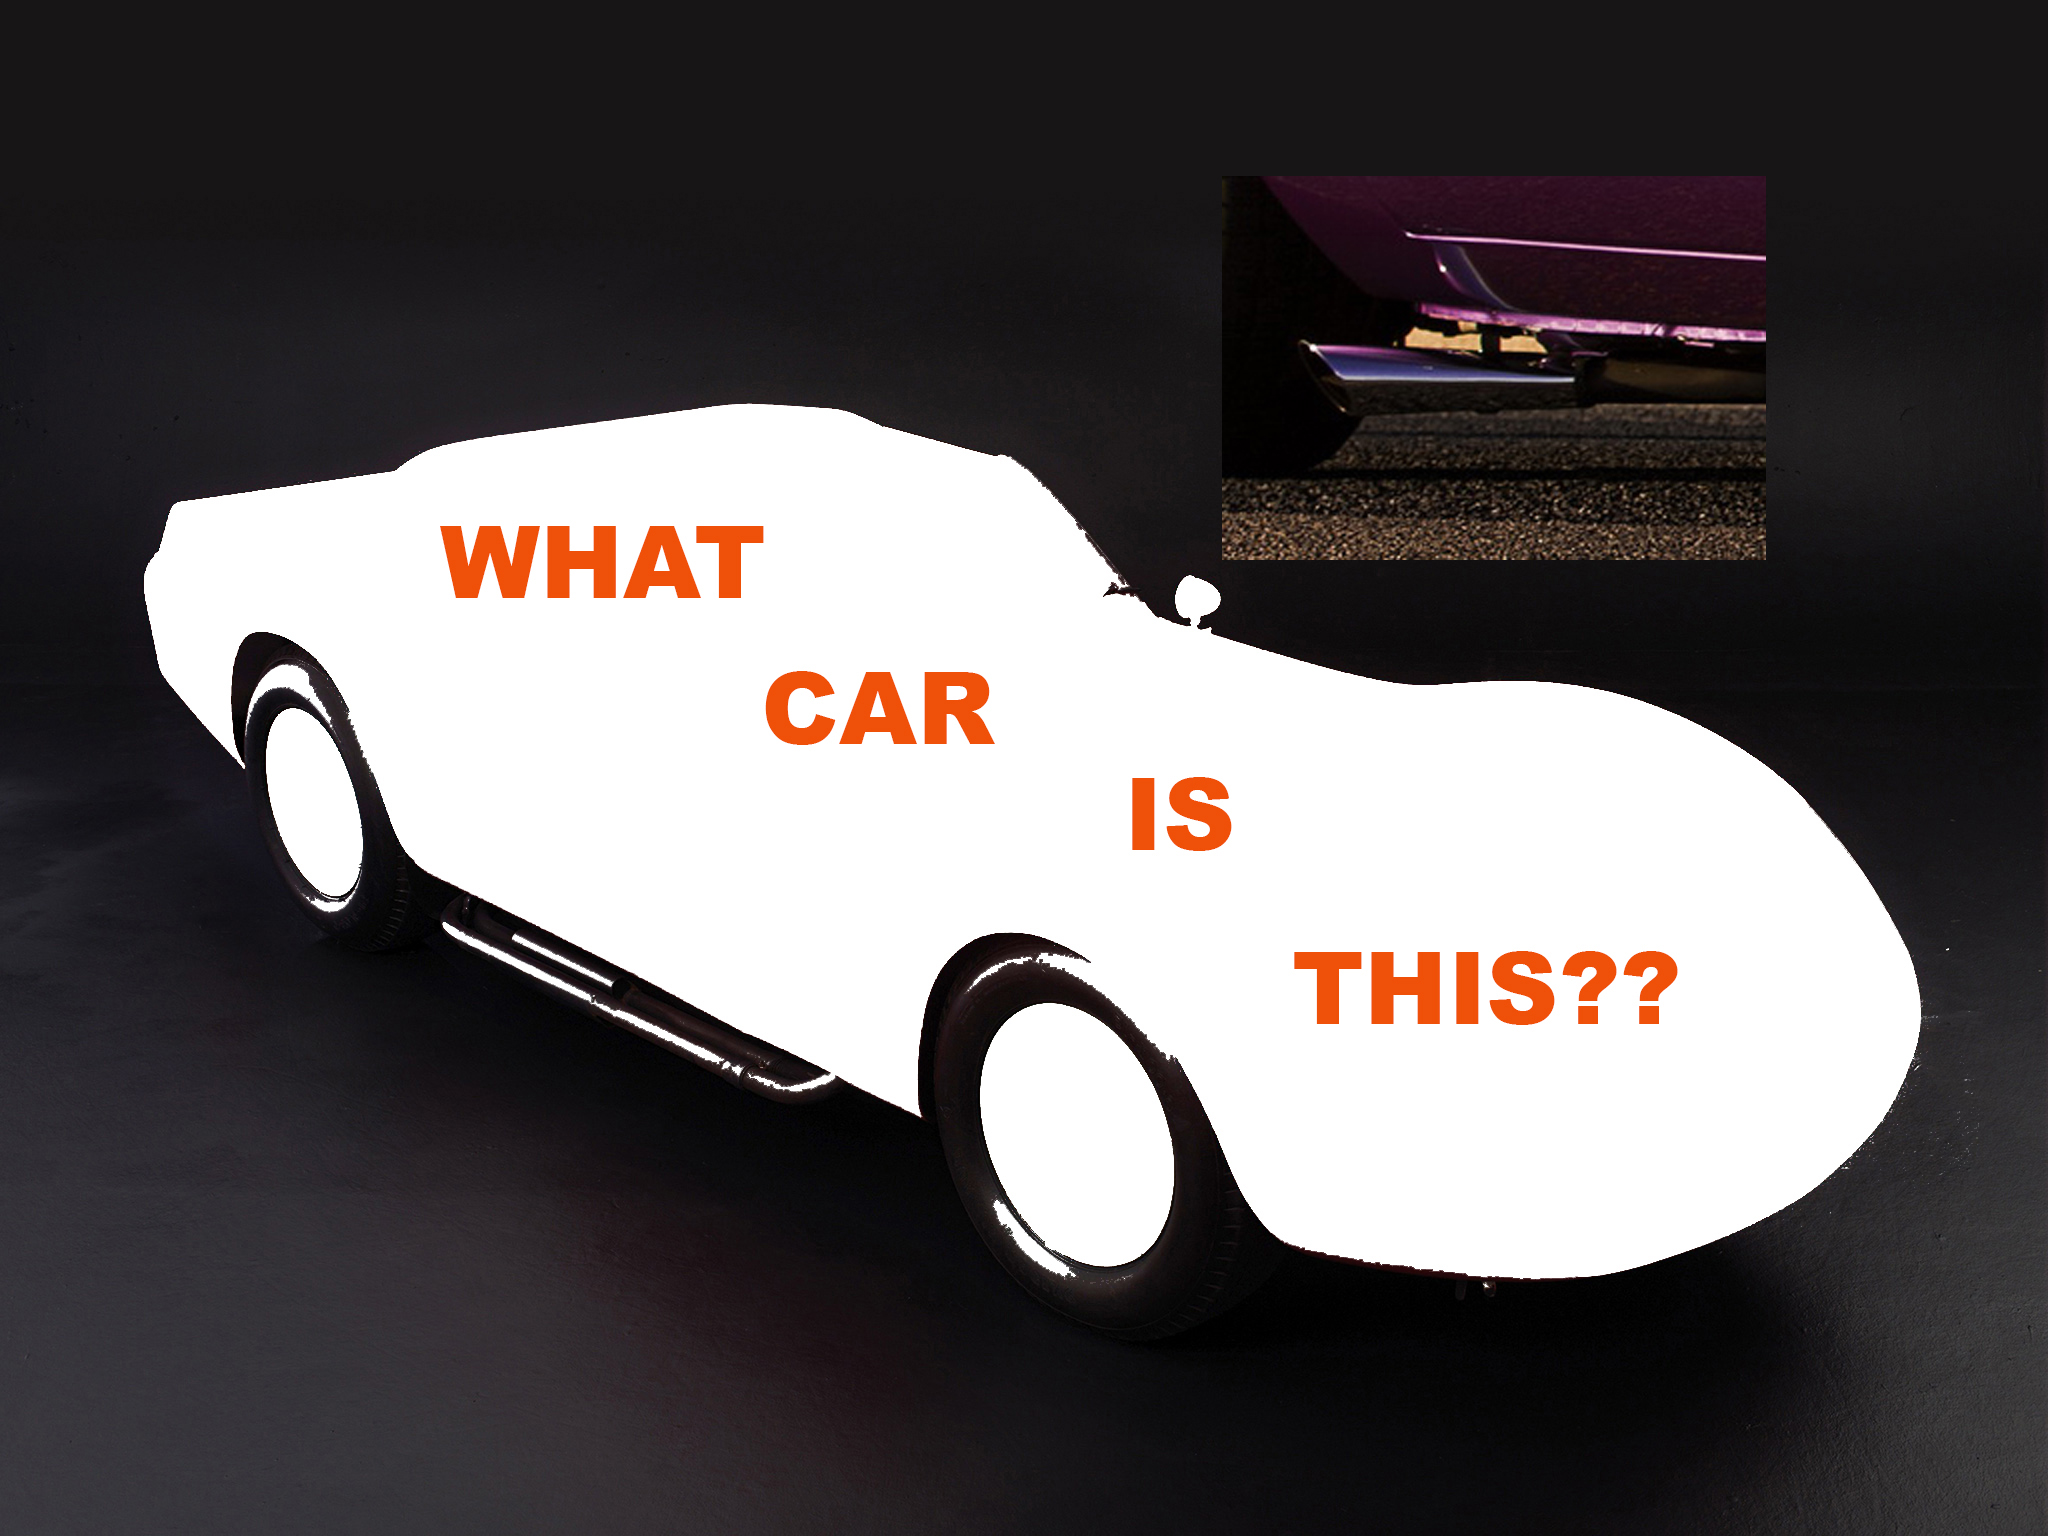 What Car Is This???